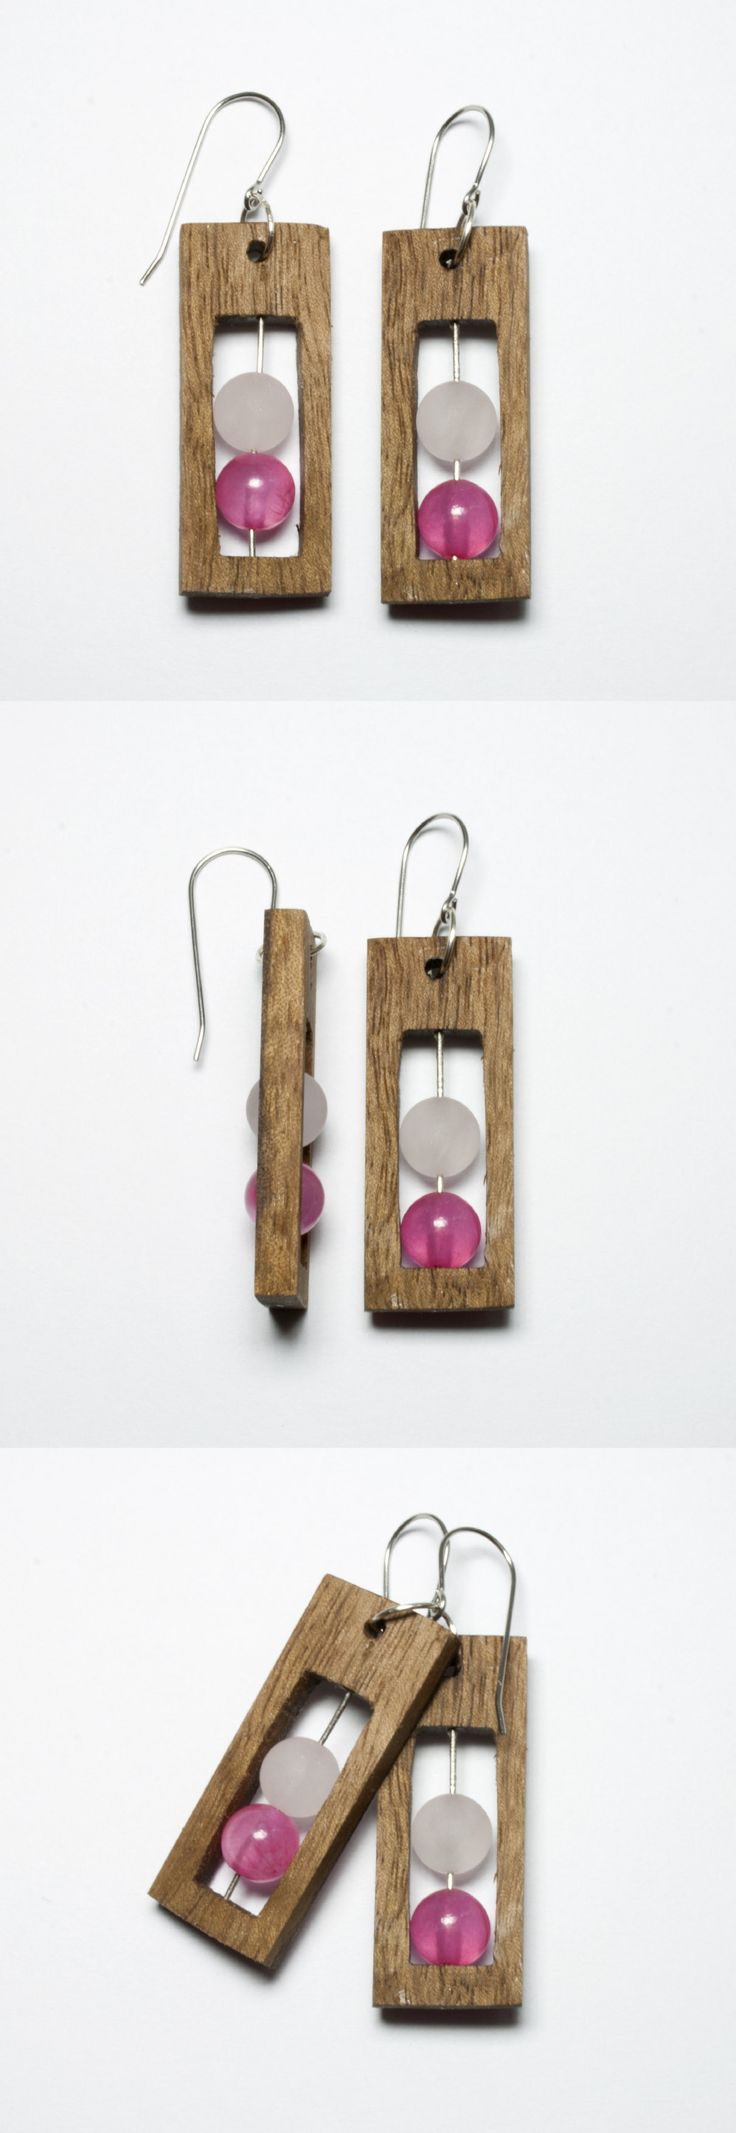 Handmade earrings with wood walnut Italian. In the middle they are mounted matte beads of pink quartz and pink jade on a silver stick. Hooks are made of steel anti-allergic. Length earring - 4cm The width of earring - 1.5cm